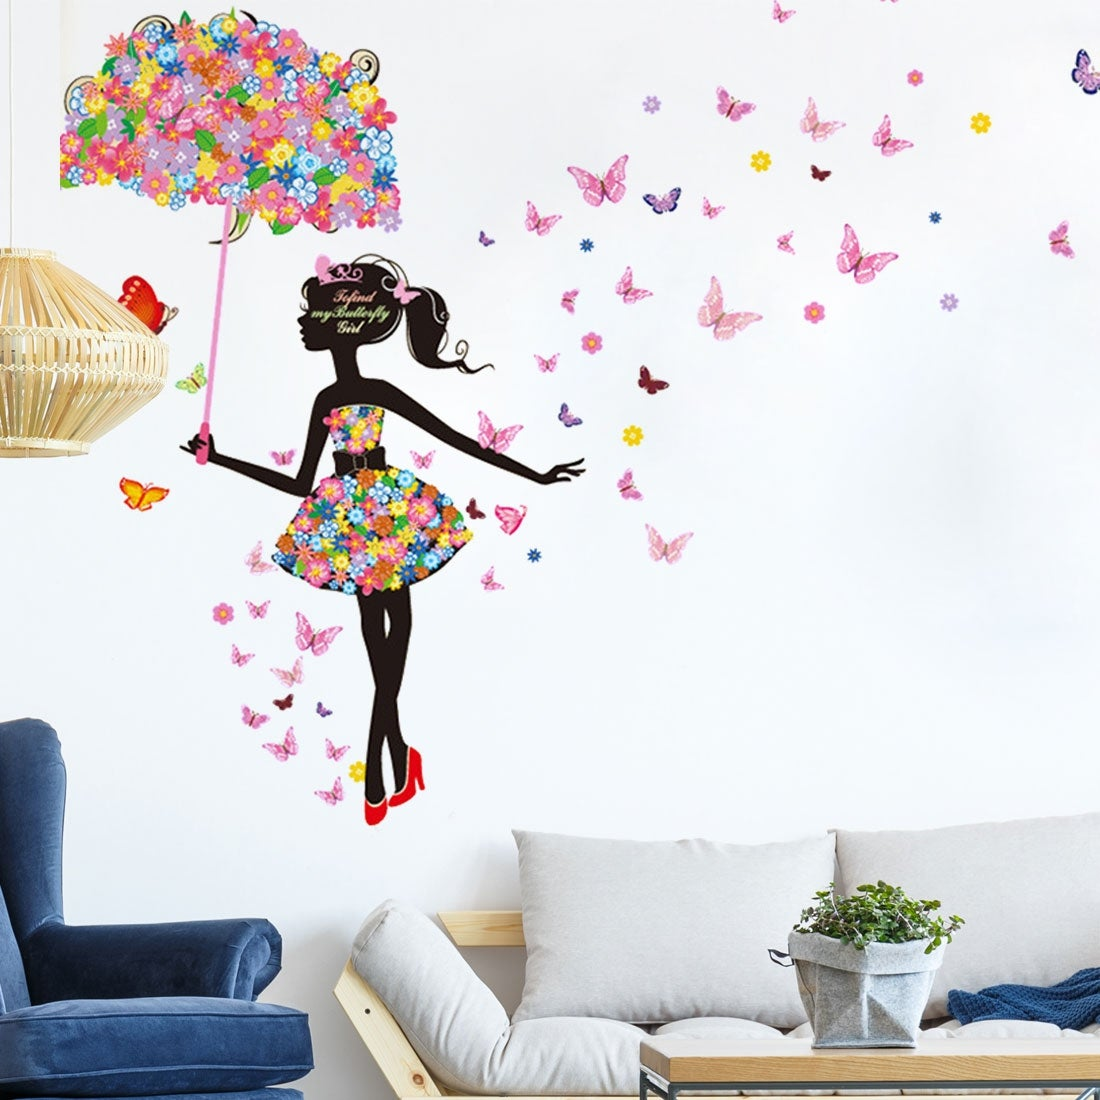 Shop Umbrella Butterfly Flower Girl Removable Vinyl DIY Wall Art Sticker 354x236